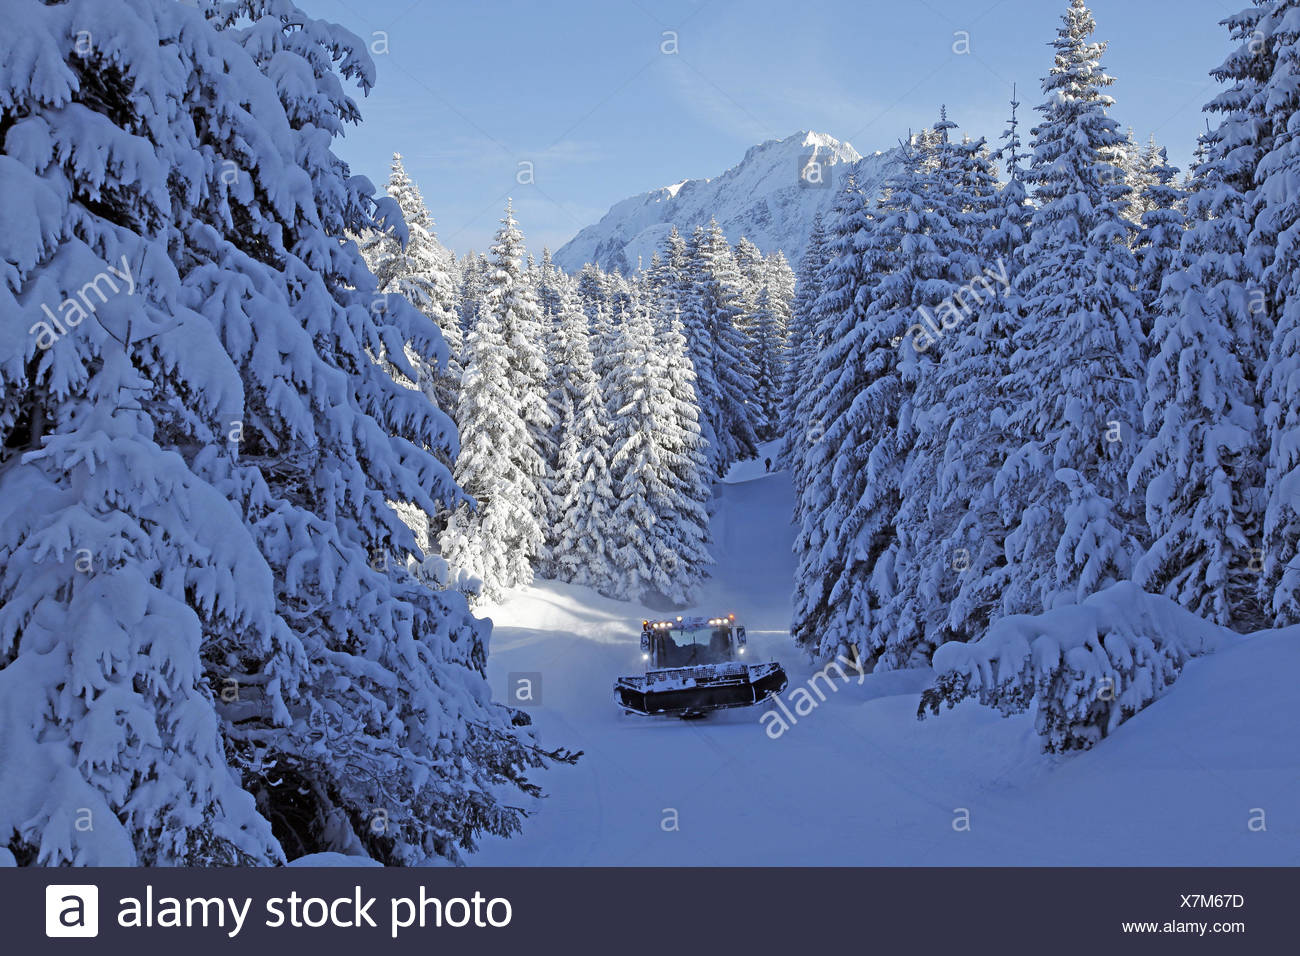 piste basher in the winter wood, - Stock Image